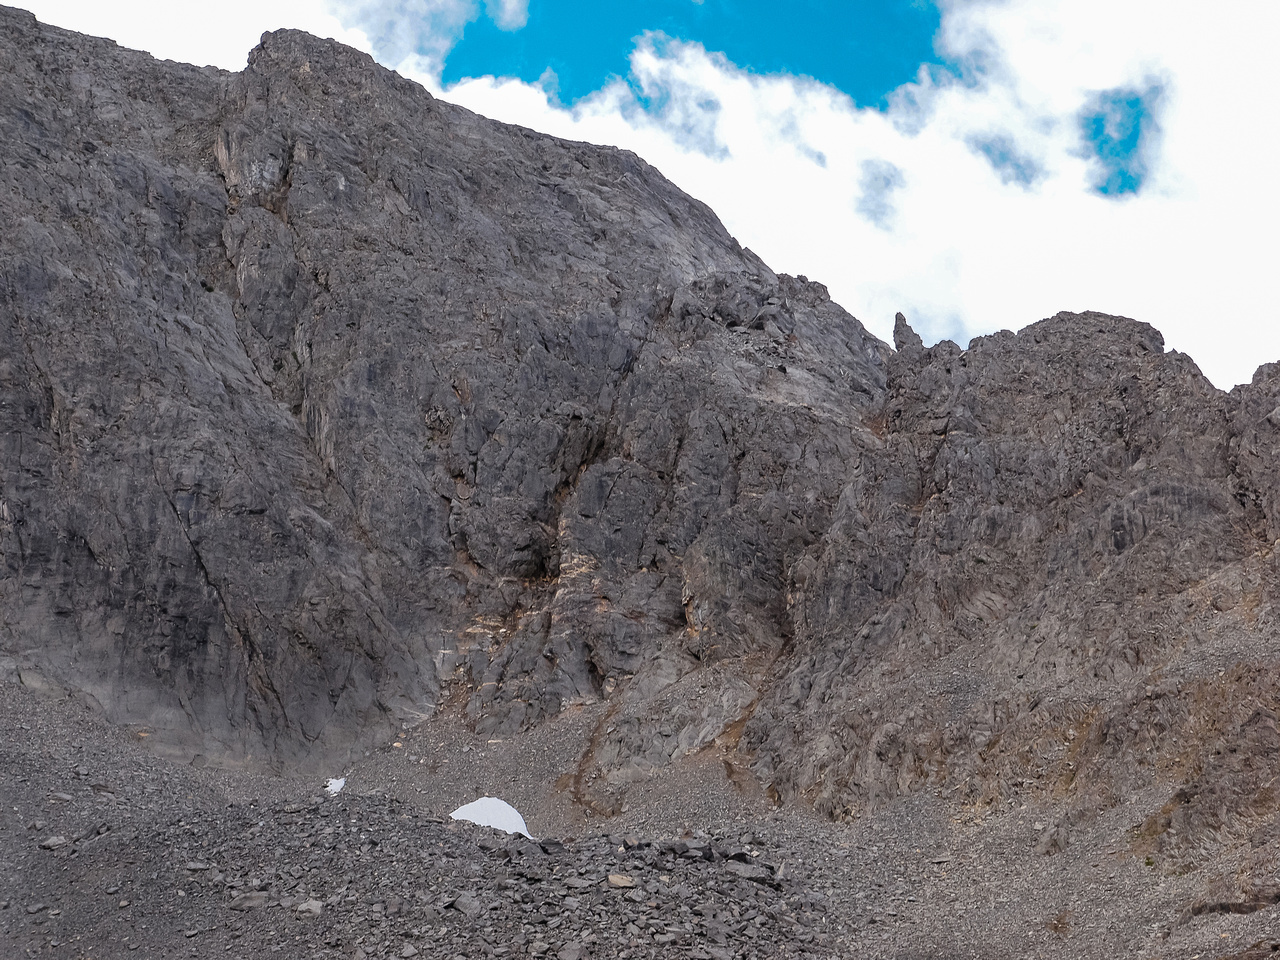 Note the obvious pinnacle at the top of the correct ascent gully.